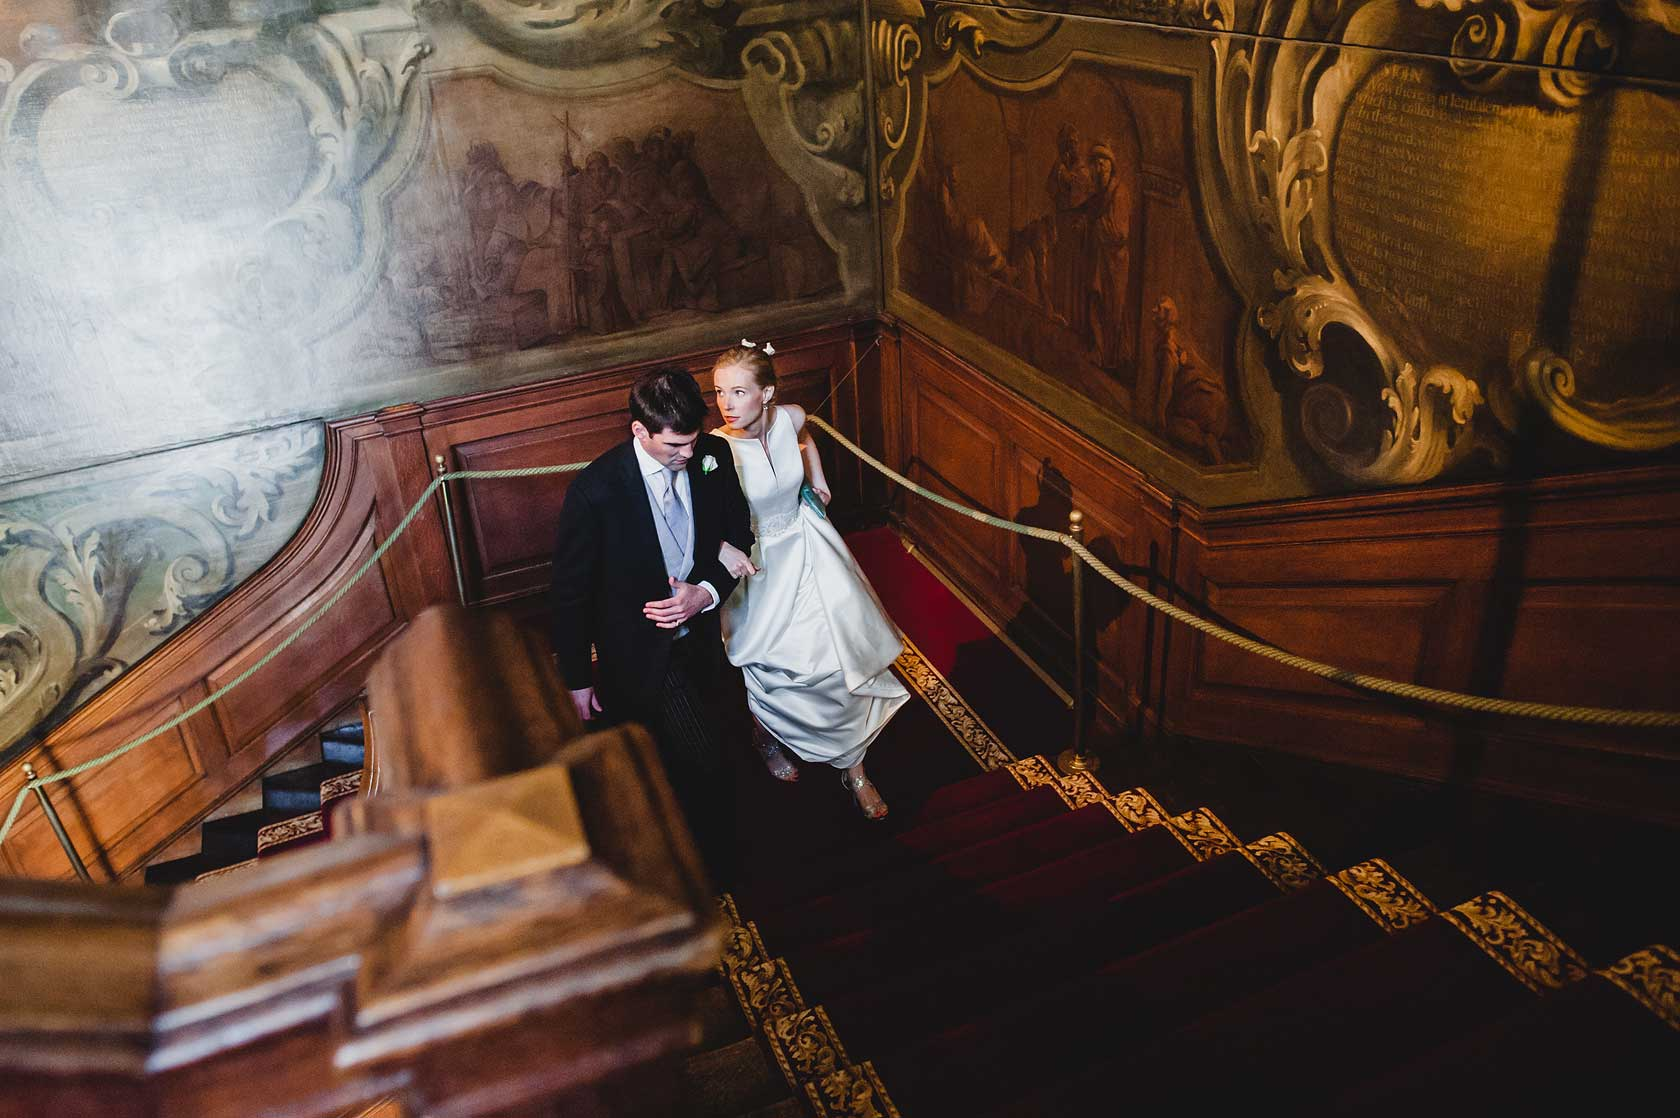 Reportage Wedding Photography at St Barts Hospital